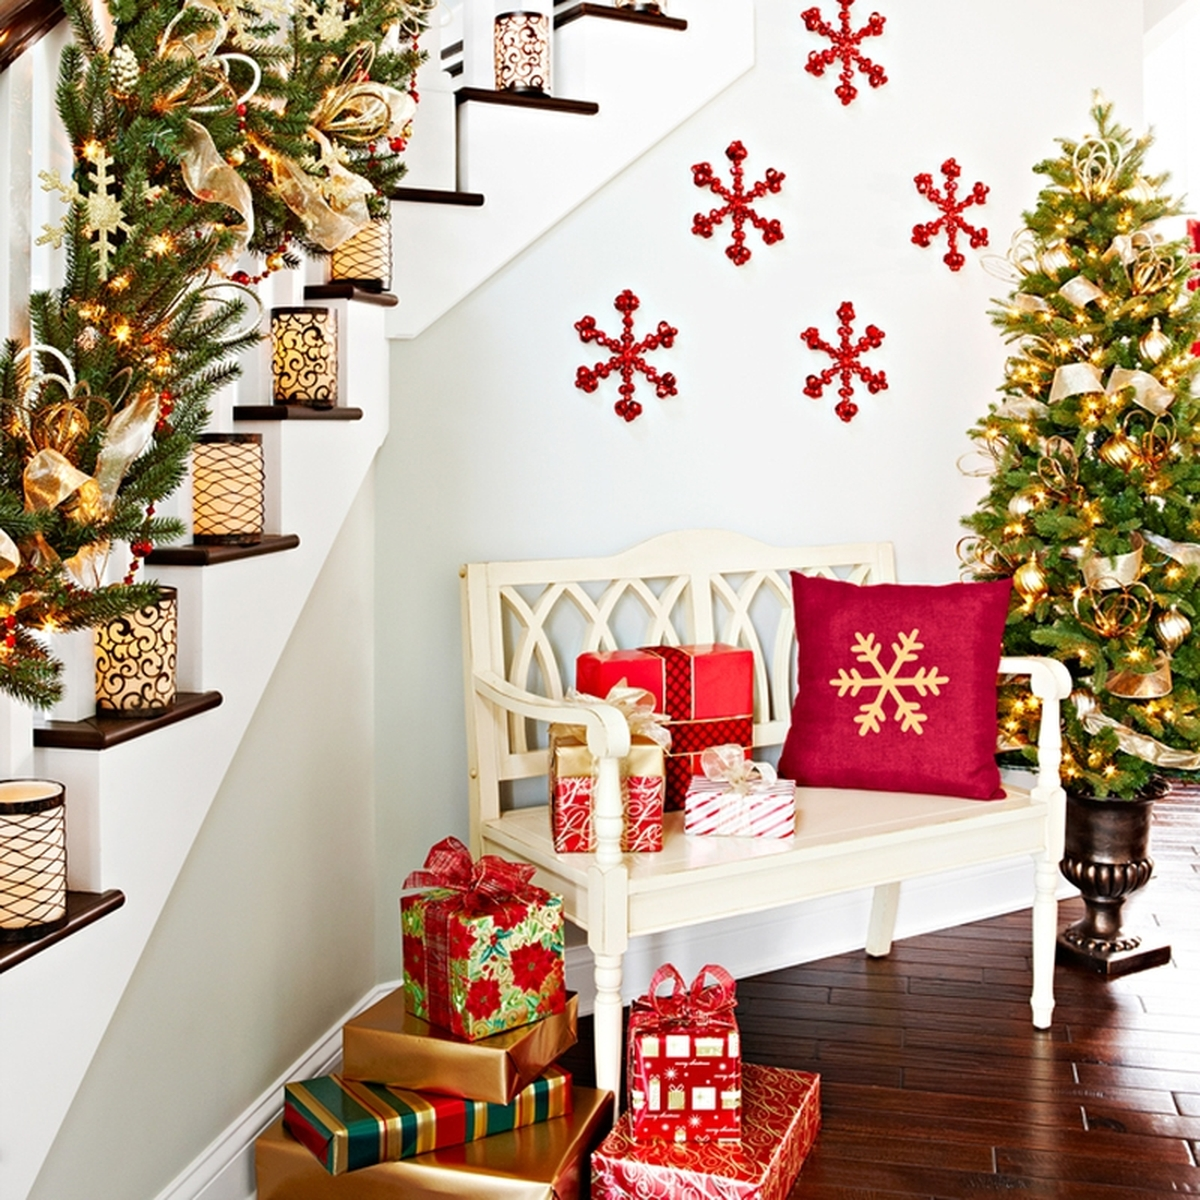 Best indoor decoration ideas for christmas in